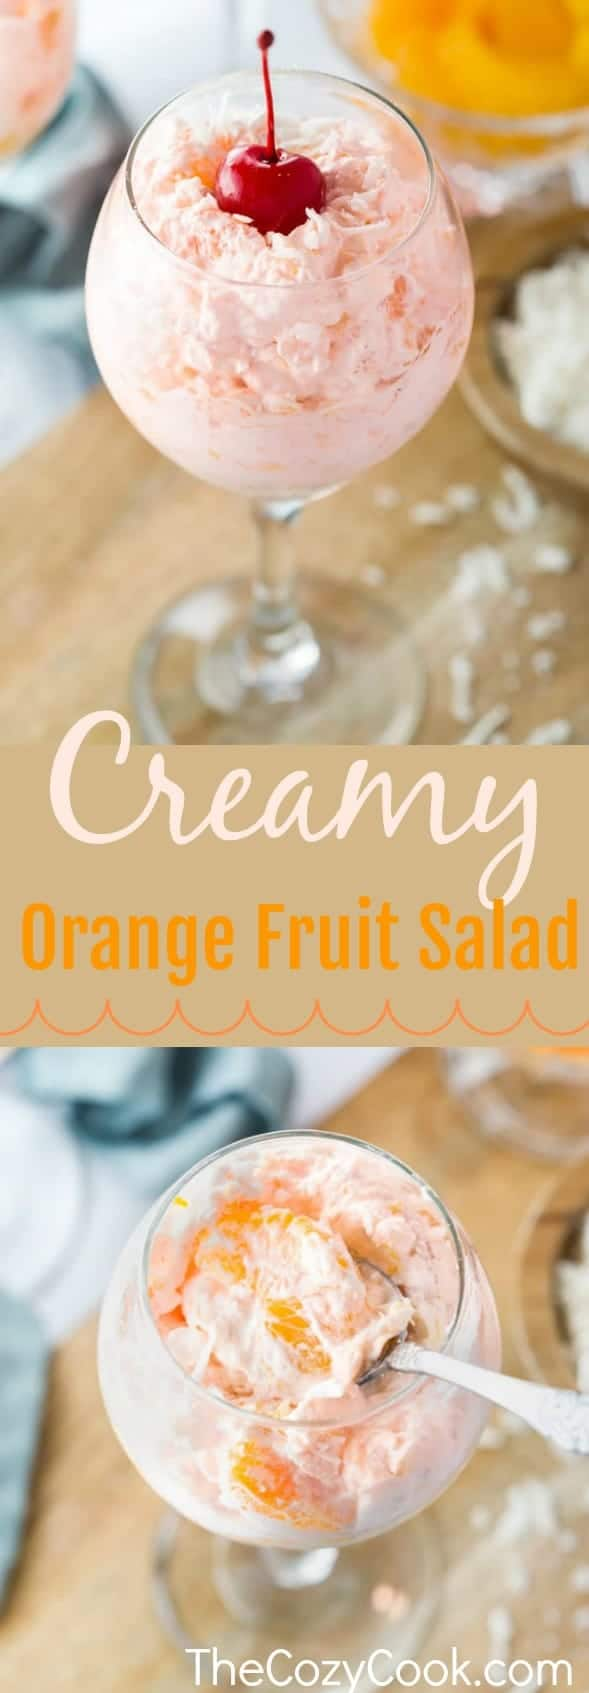 This creamy orange fruit salad is loaded with an easy combination of mandarin oranges, crushed pineapple, coconut flakes, and an orange-flavored cool whip mixture that's topped with maraschino cherries.#Fruit #Salad #Oranges #Creamy #Mandarin #Side Dishes #Summer Food #CoolWhip #Brunch #Dessert #Holidays